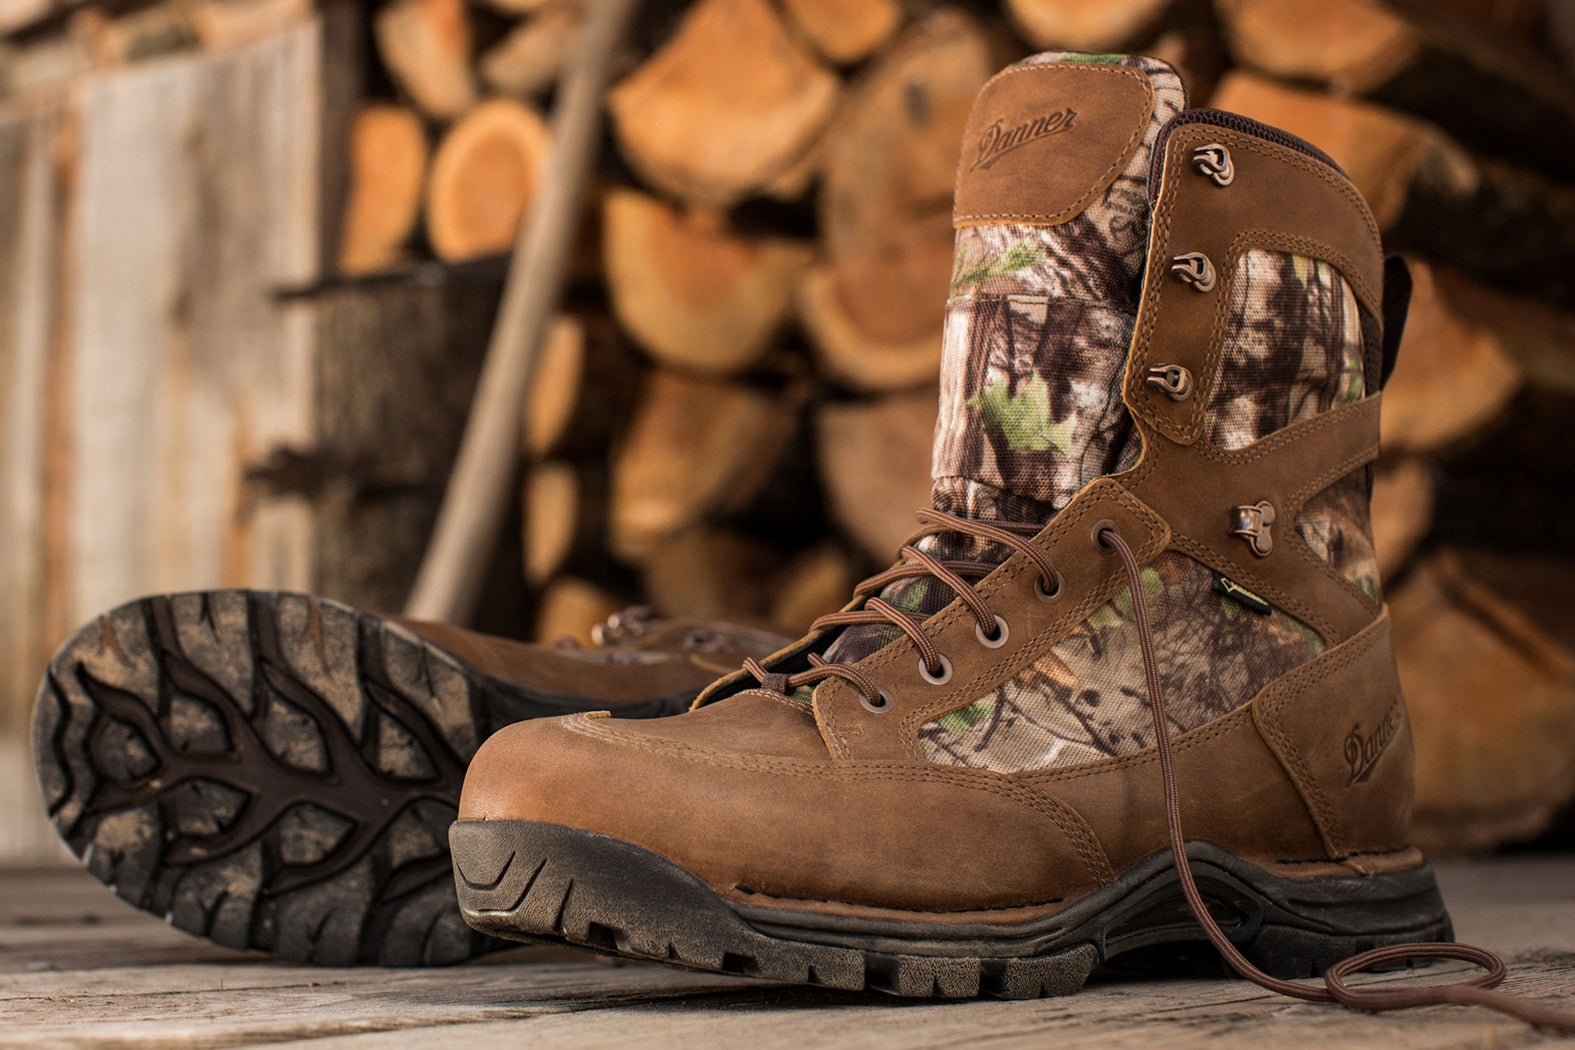 The Backcountry Hunter's Holiday Gift Guide 2014